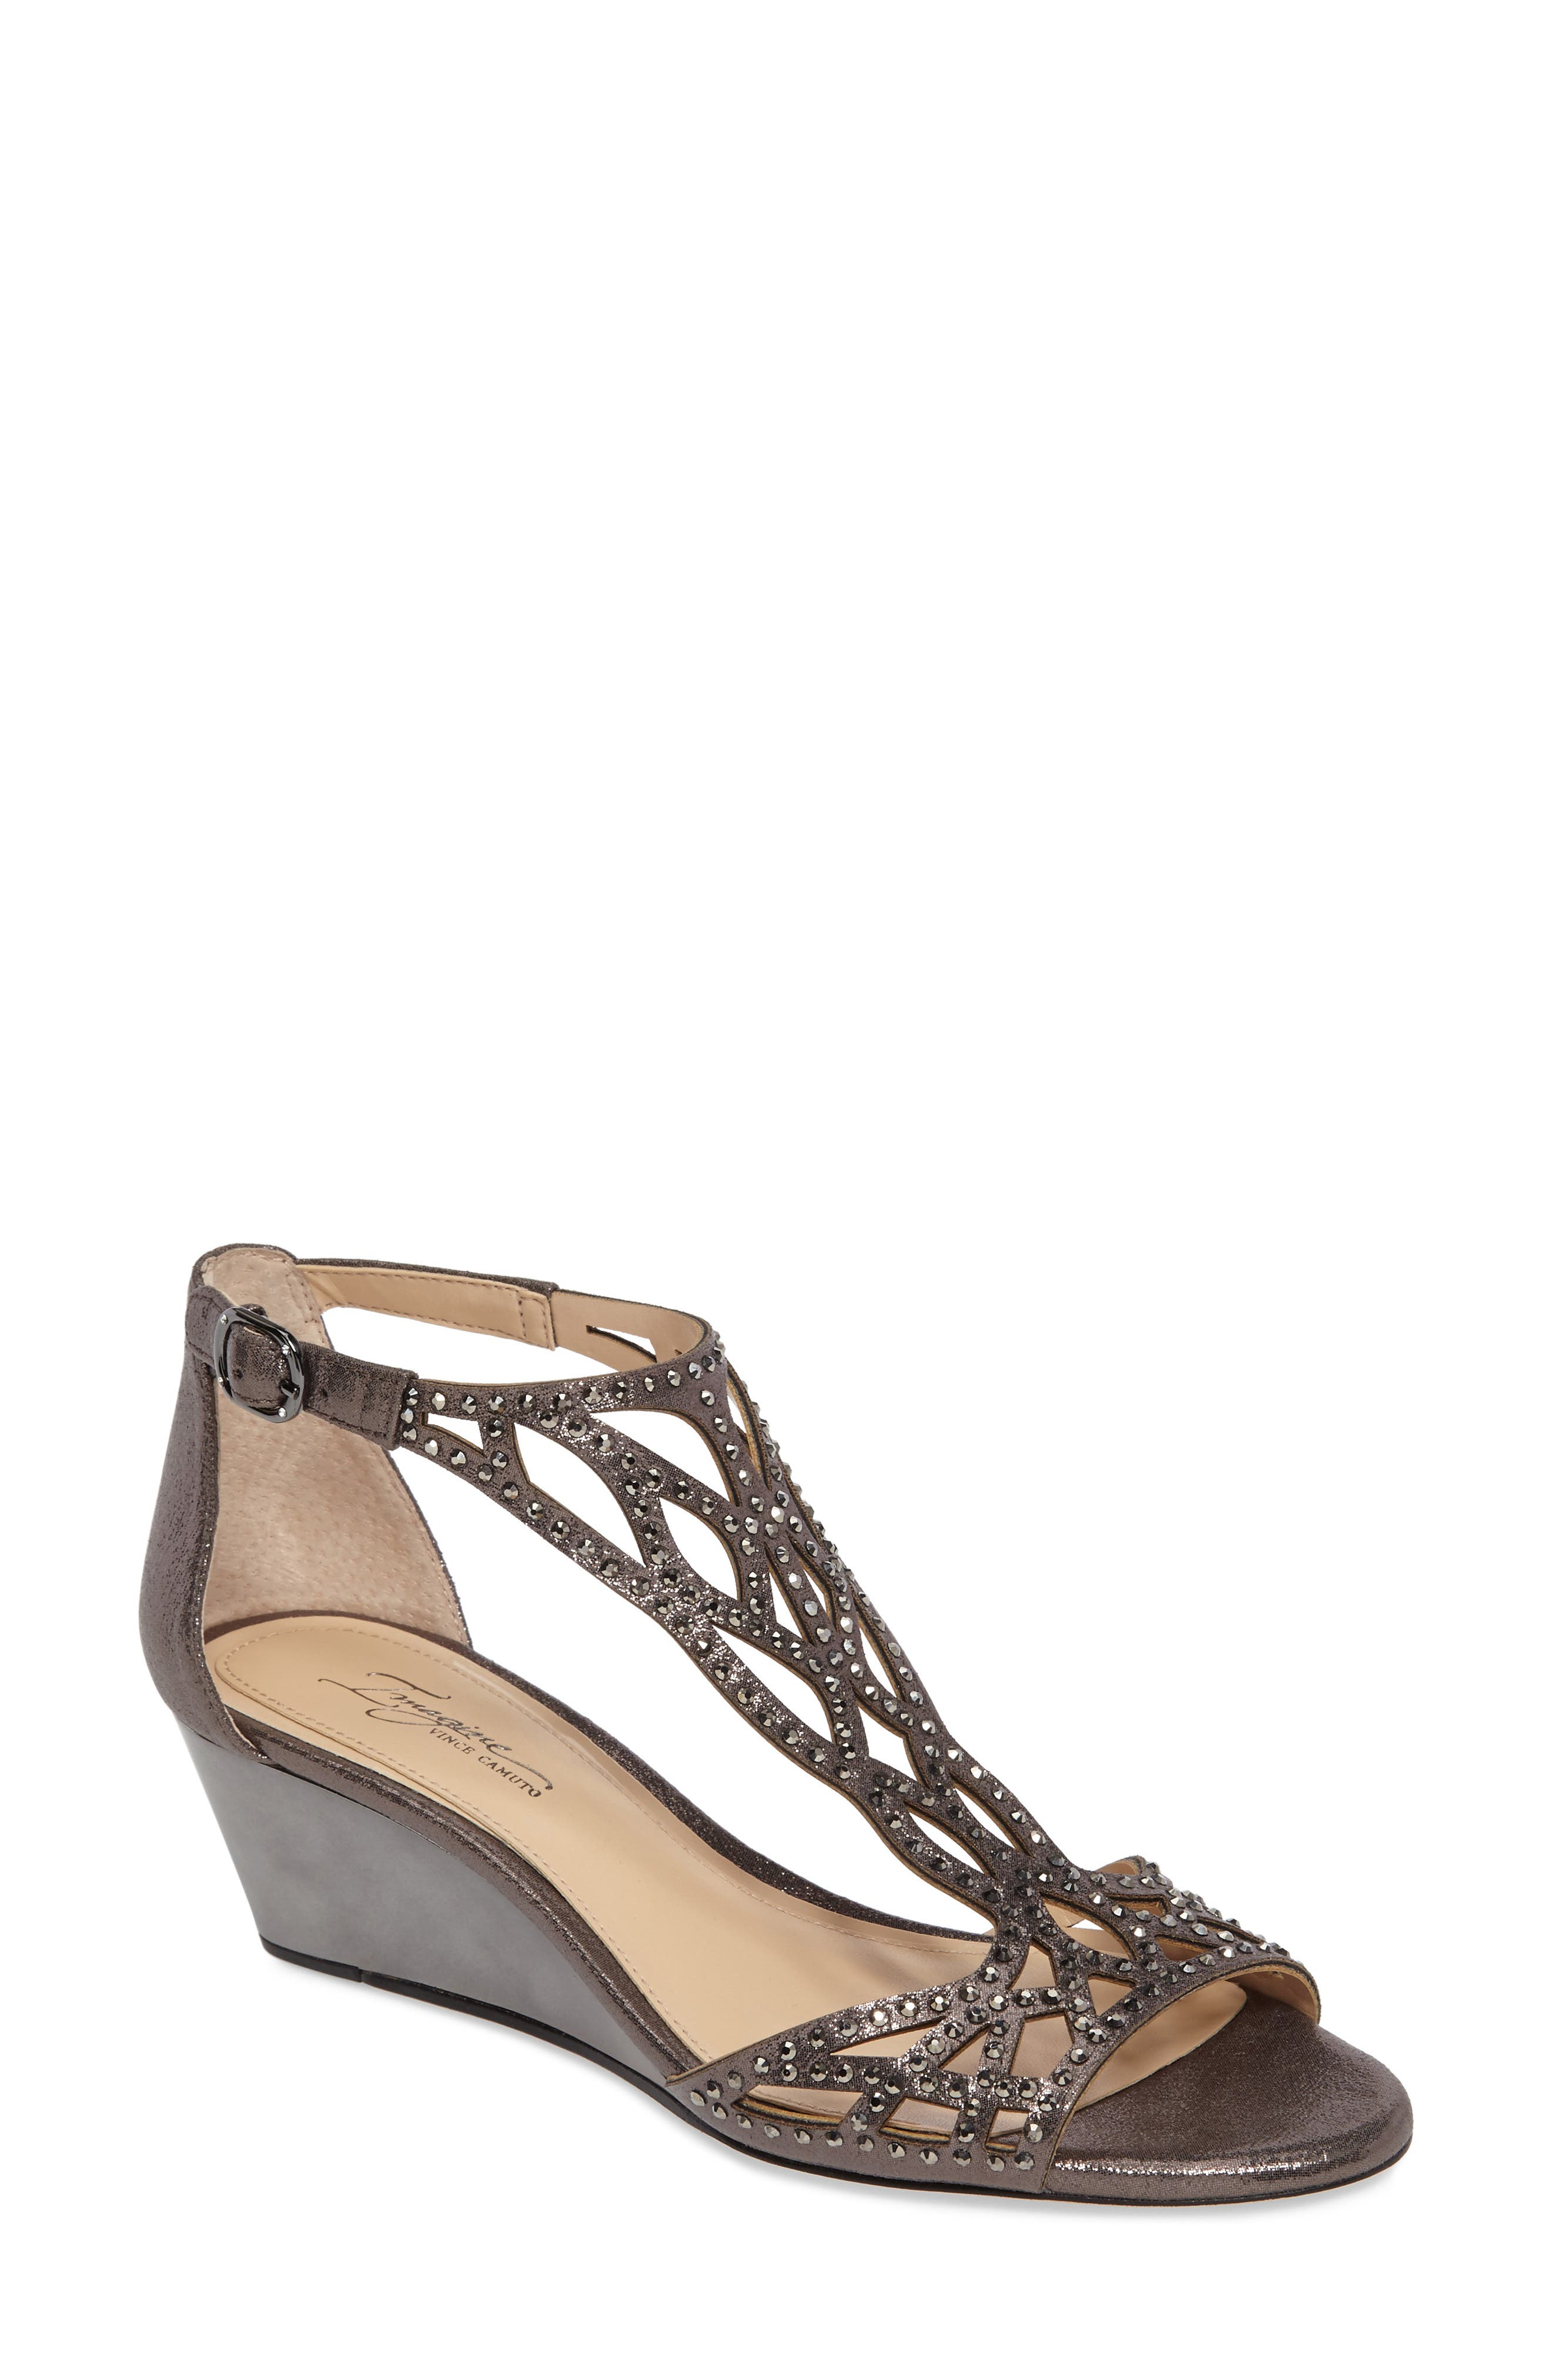 Main Image - Imagine by Vince Camuto 'Jalen' Wedge Sandal (Women)